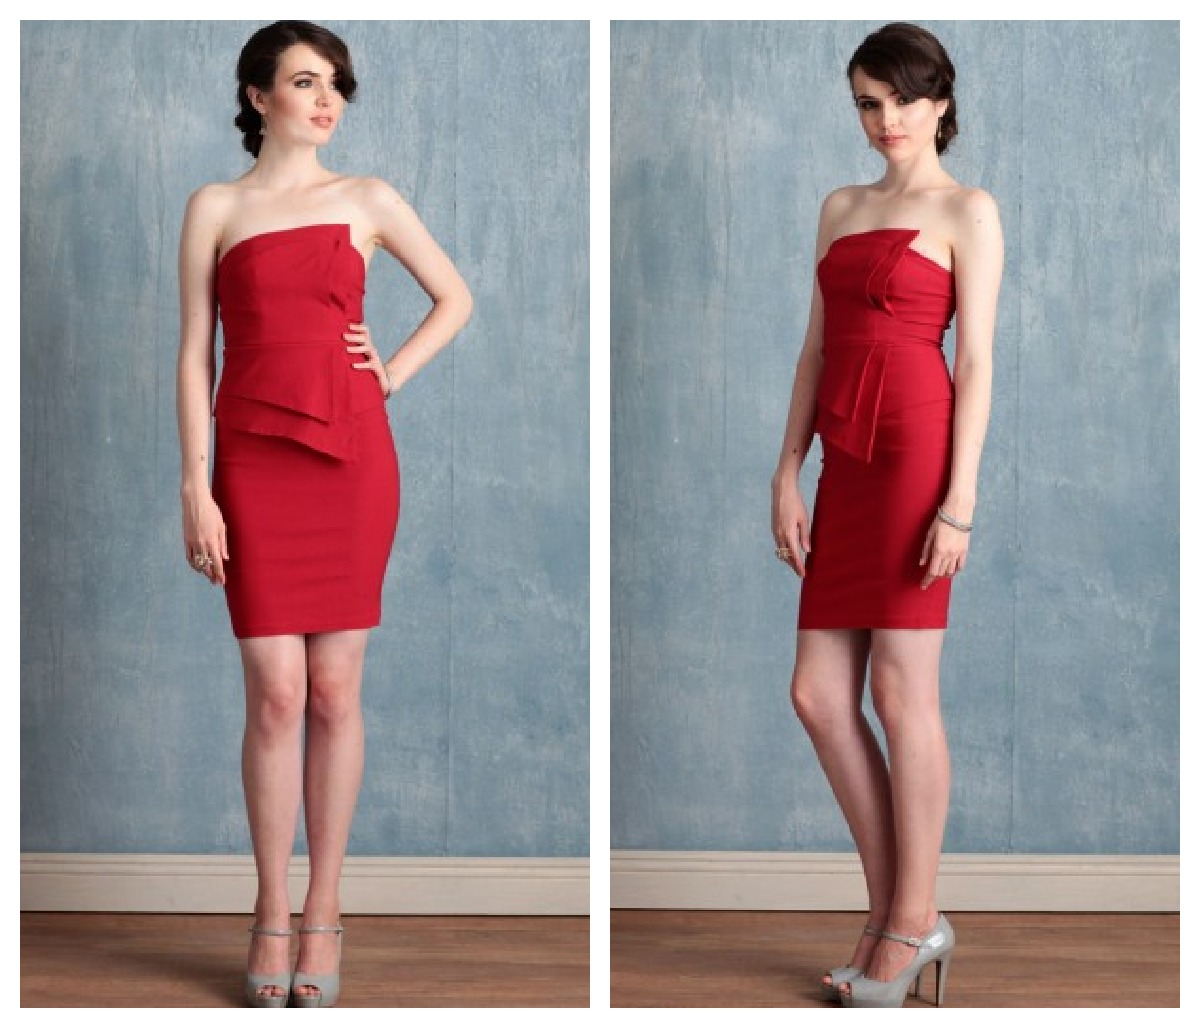 wedding dresses with red in them red dress for wedding Wedding Dresses With Red In Them Image